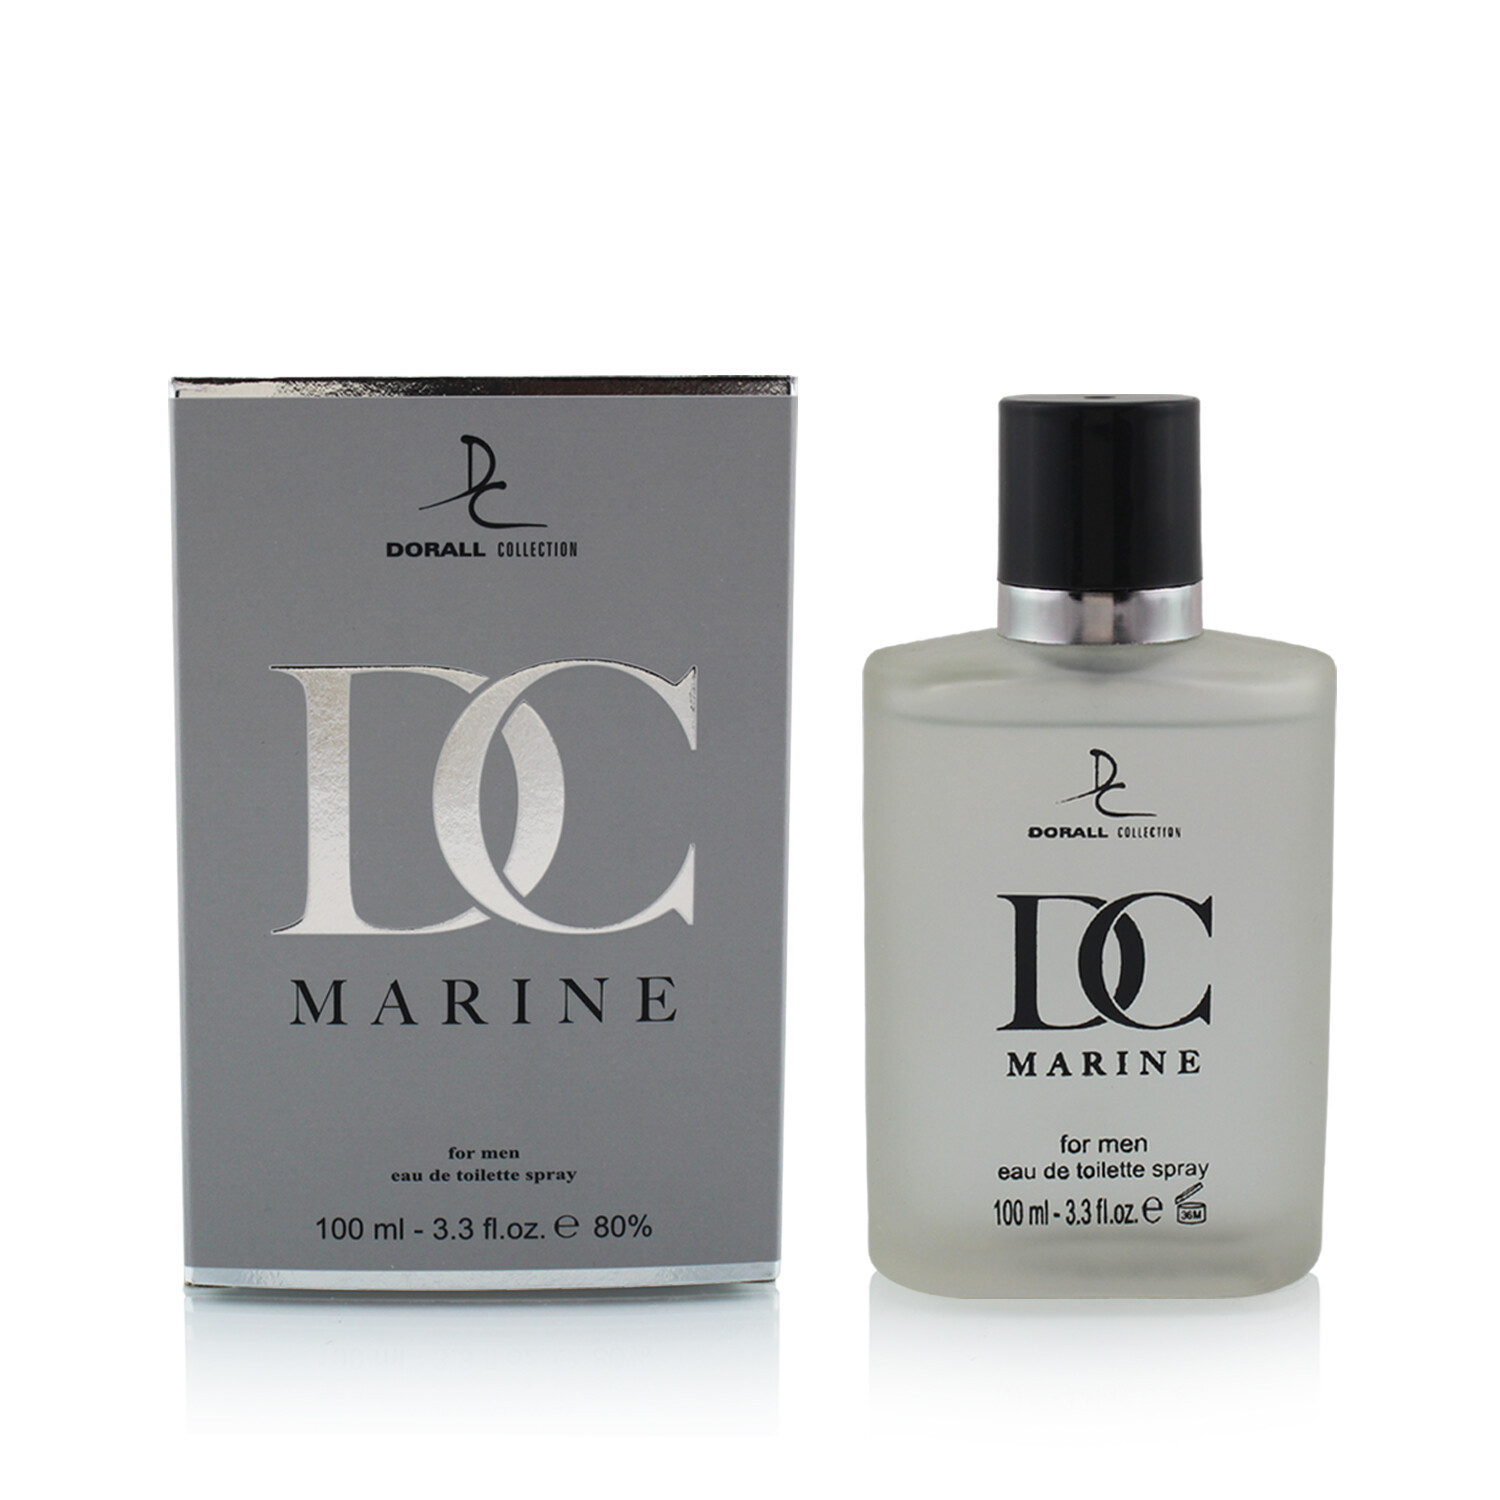 Dorall Collection DC Marine Eau de Toilette For Men 100ml